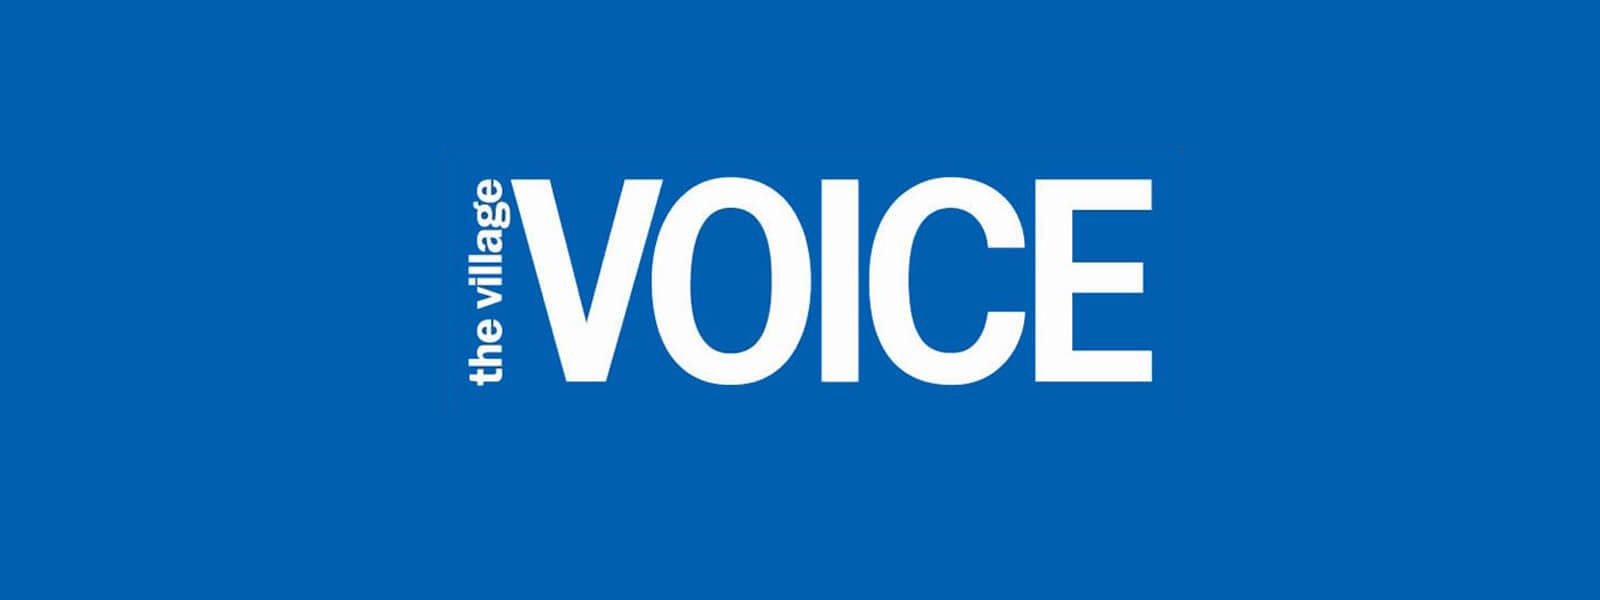 village_voice_logo